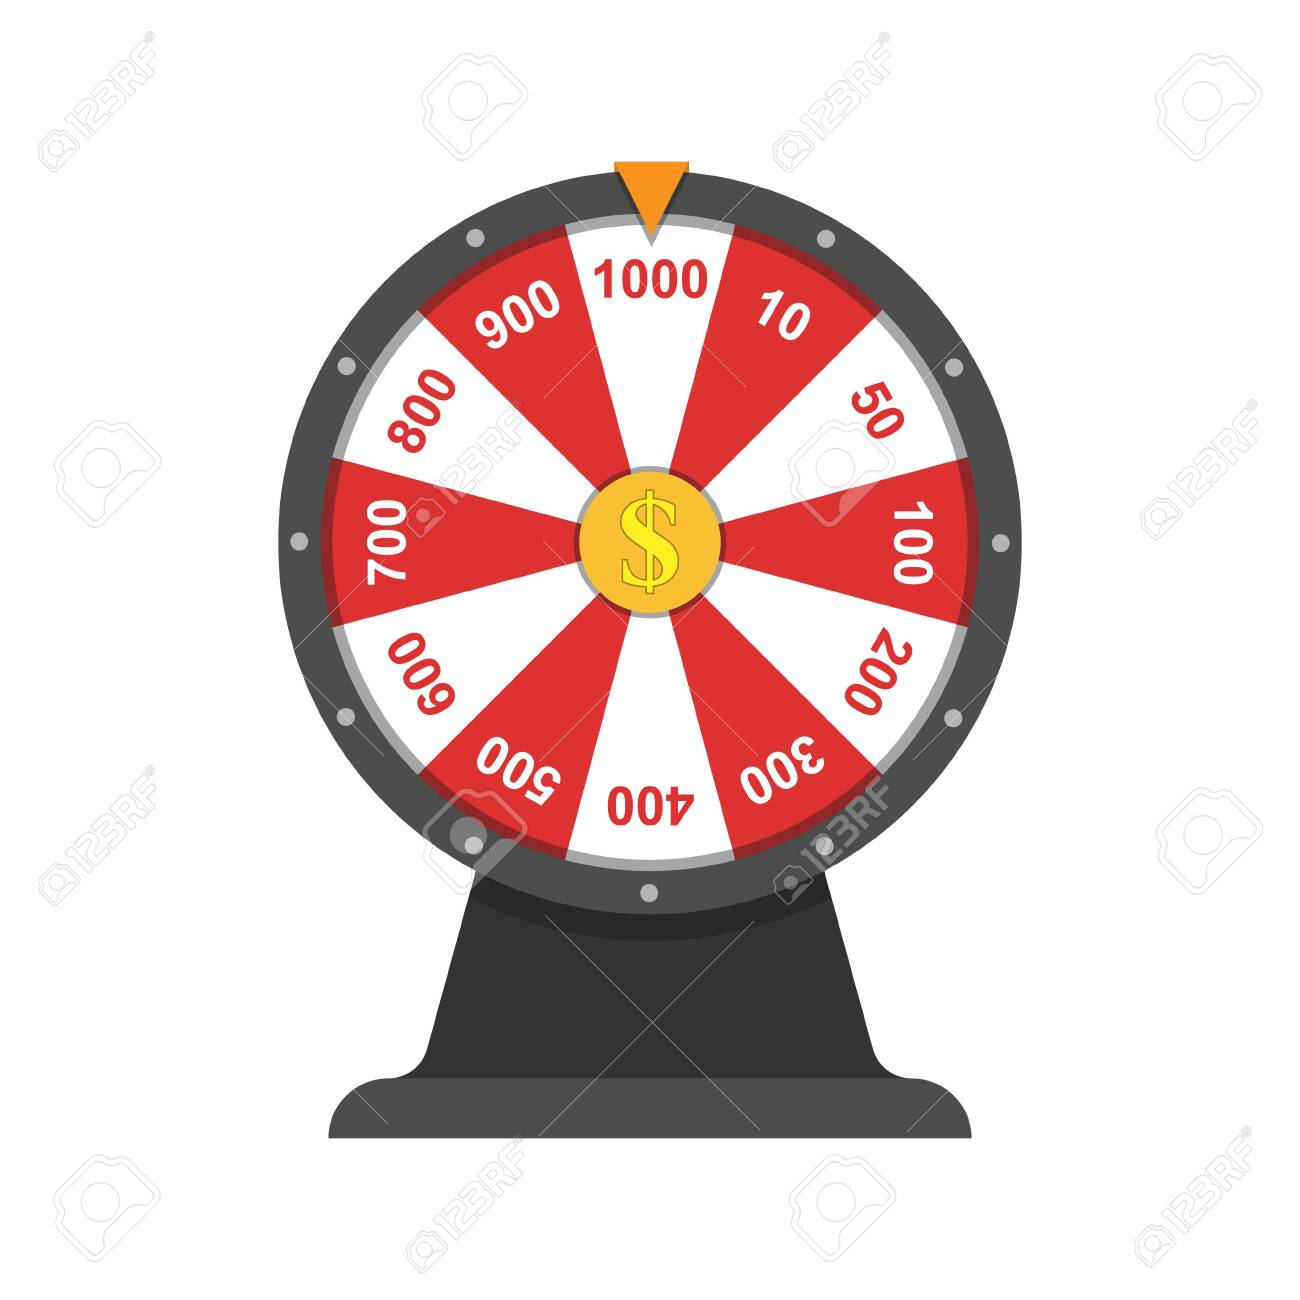 Wheel of fortune.Simple flat design isolated on white background - 146172736